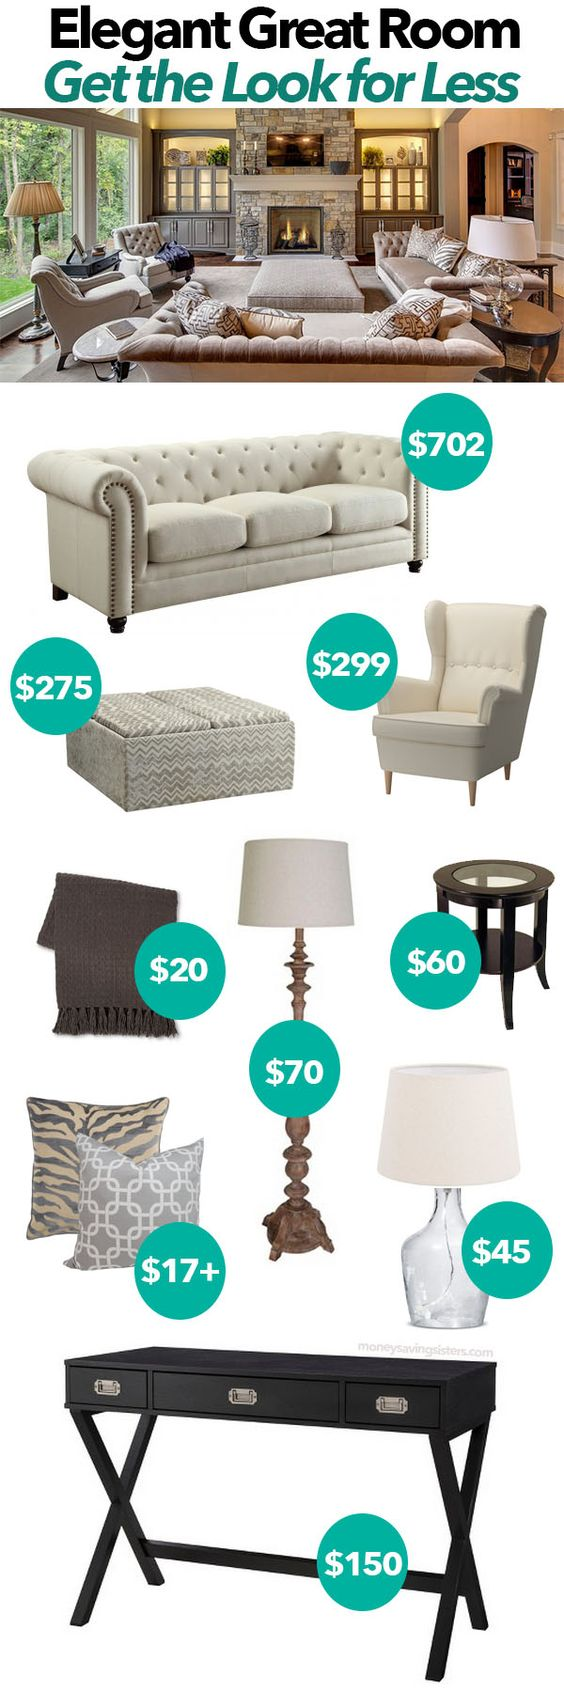 Love the neutrals in this living room re-do. All the pieces are actually affordable too!